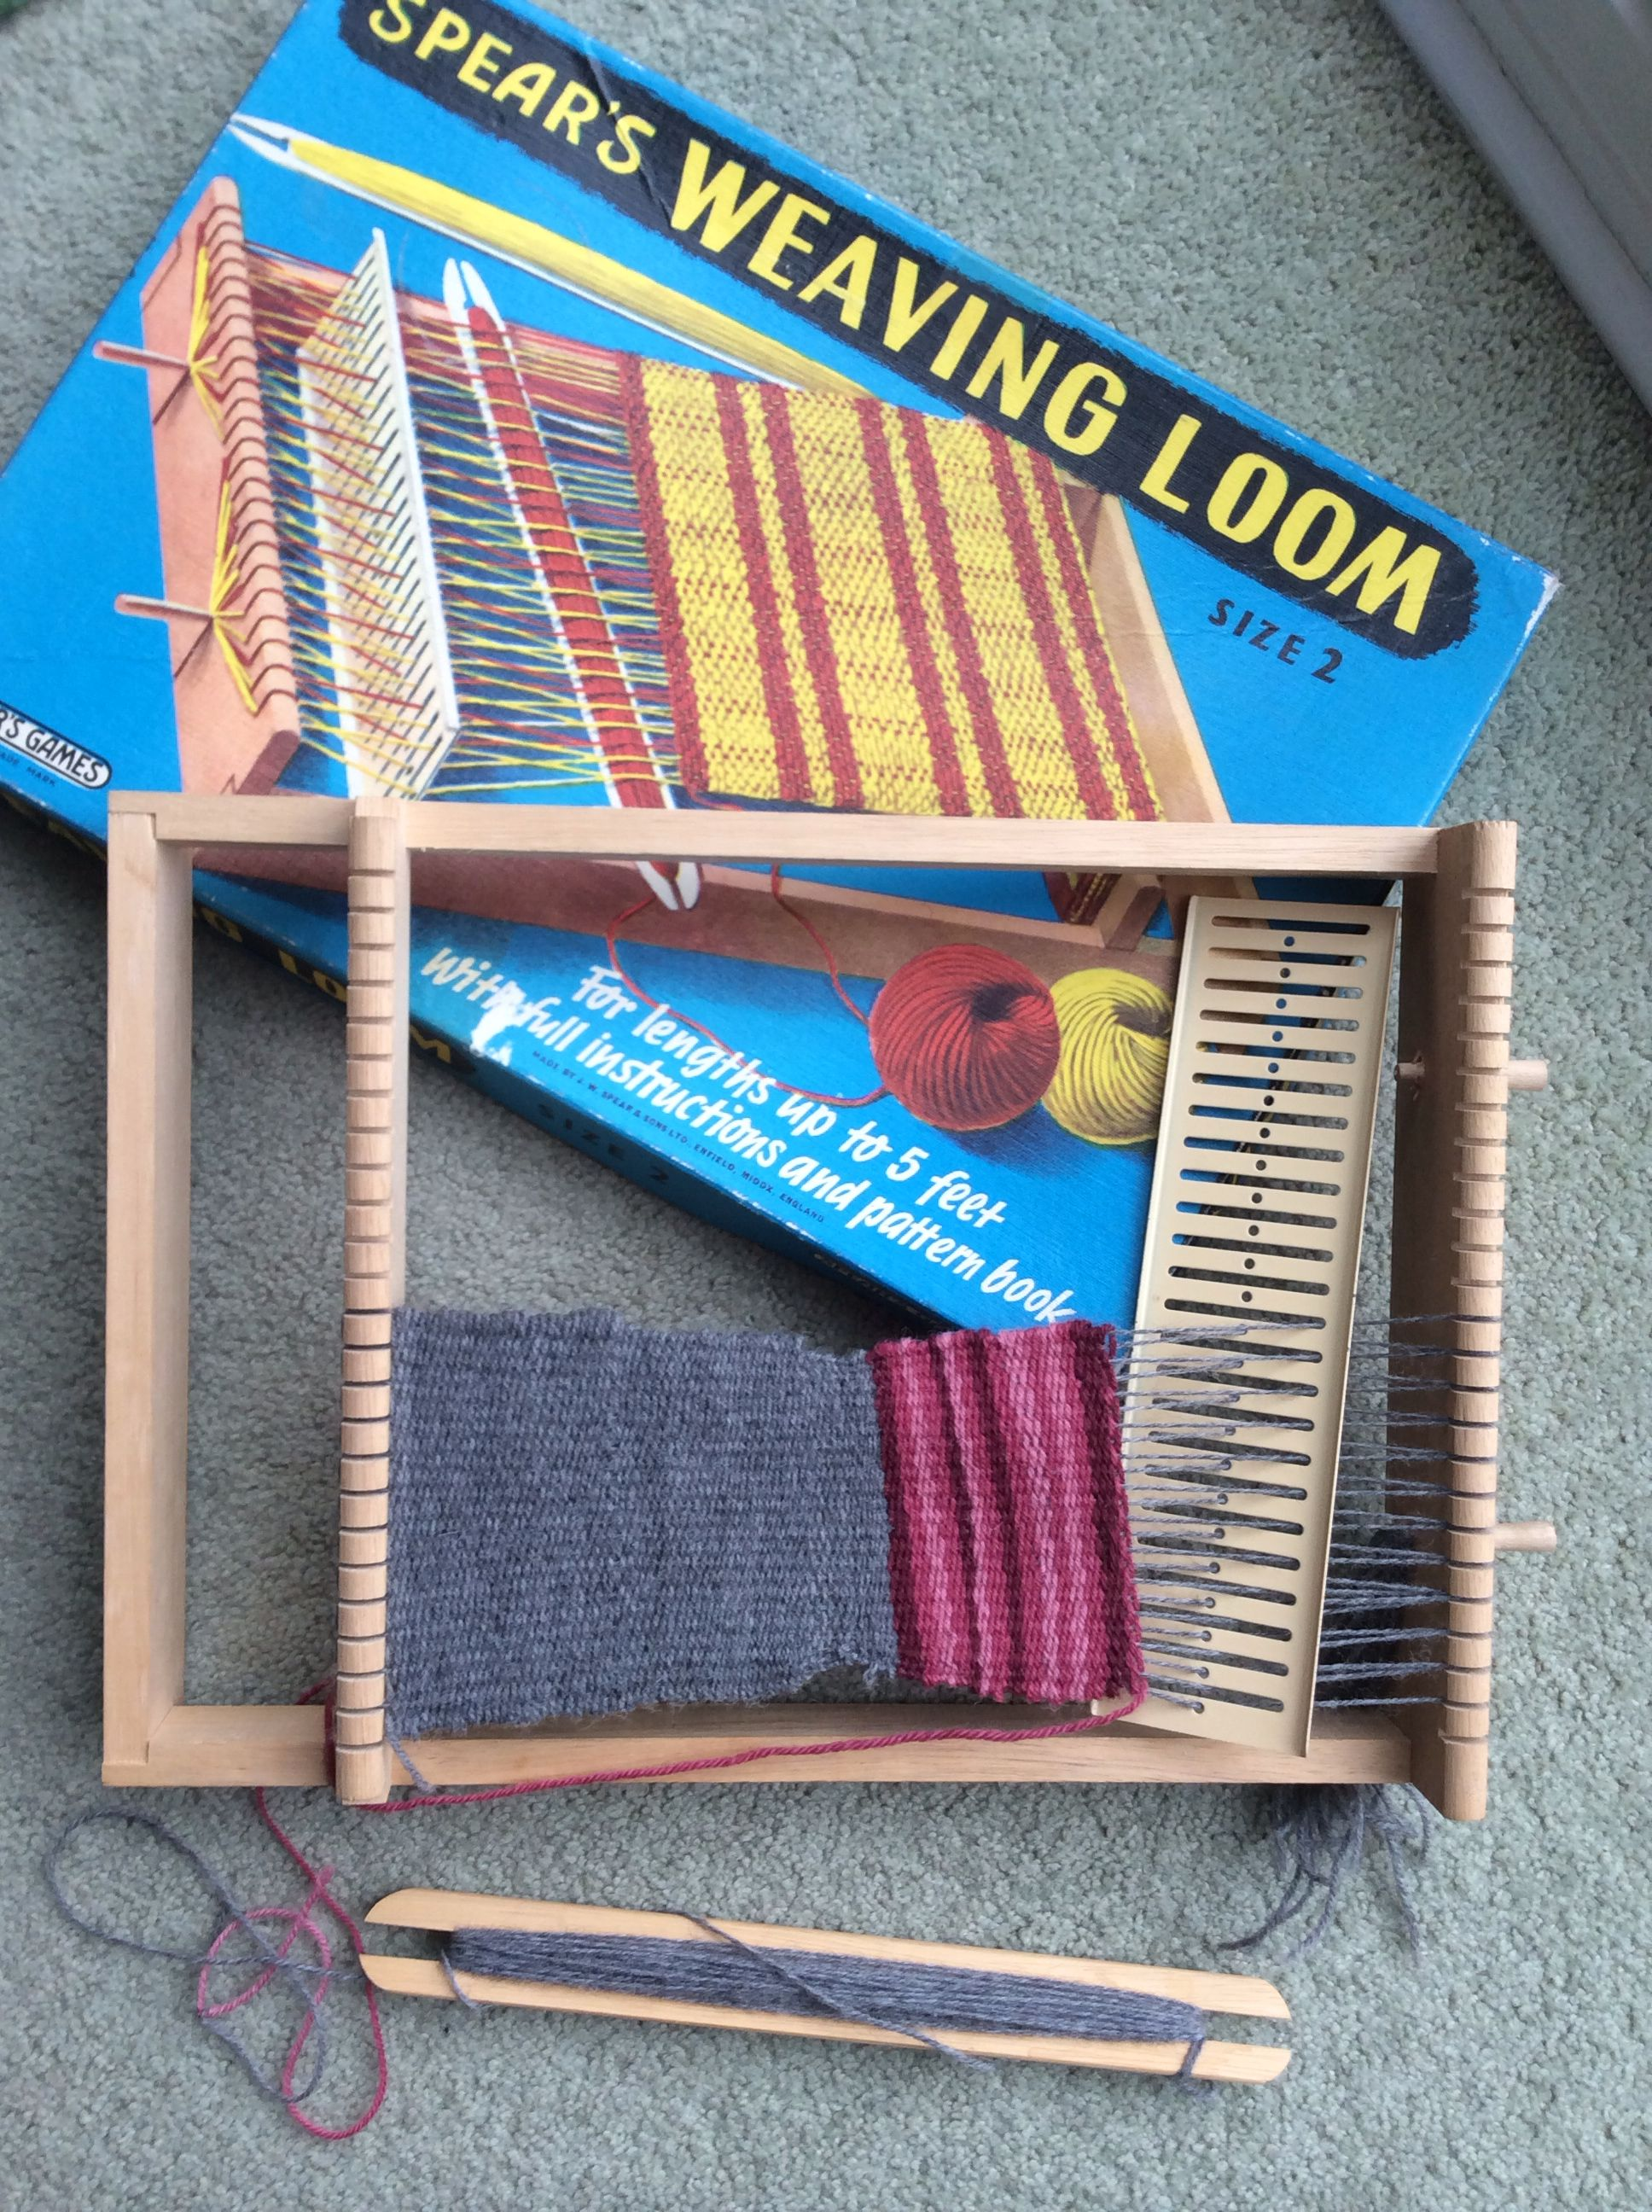 My childhood weaving loom with the original wool, NO plastic parts , all wood and  metal! pure bliss : )